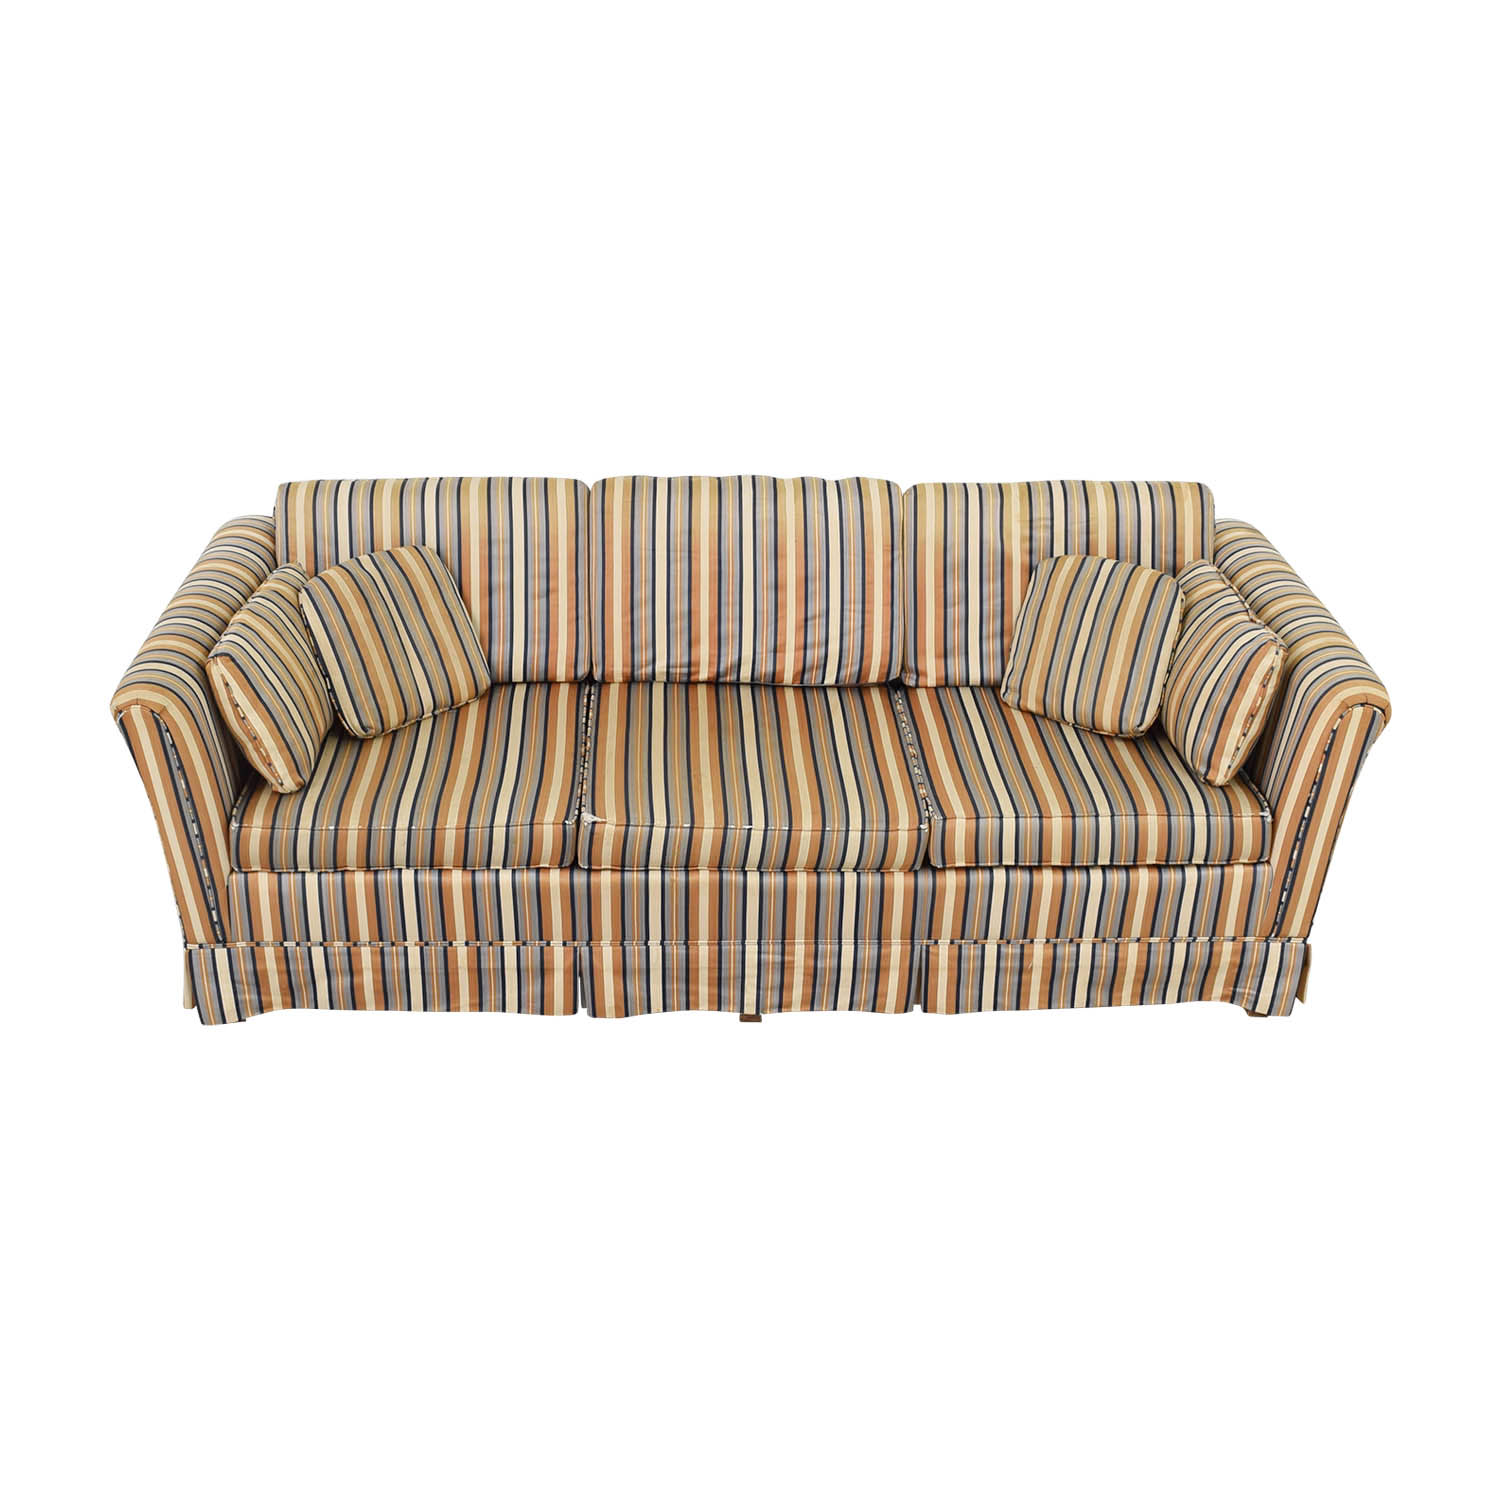 Striped Three-Seater Sofa nj